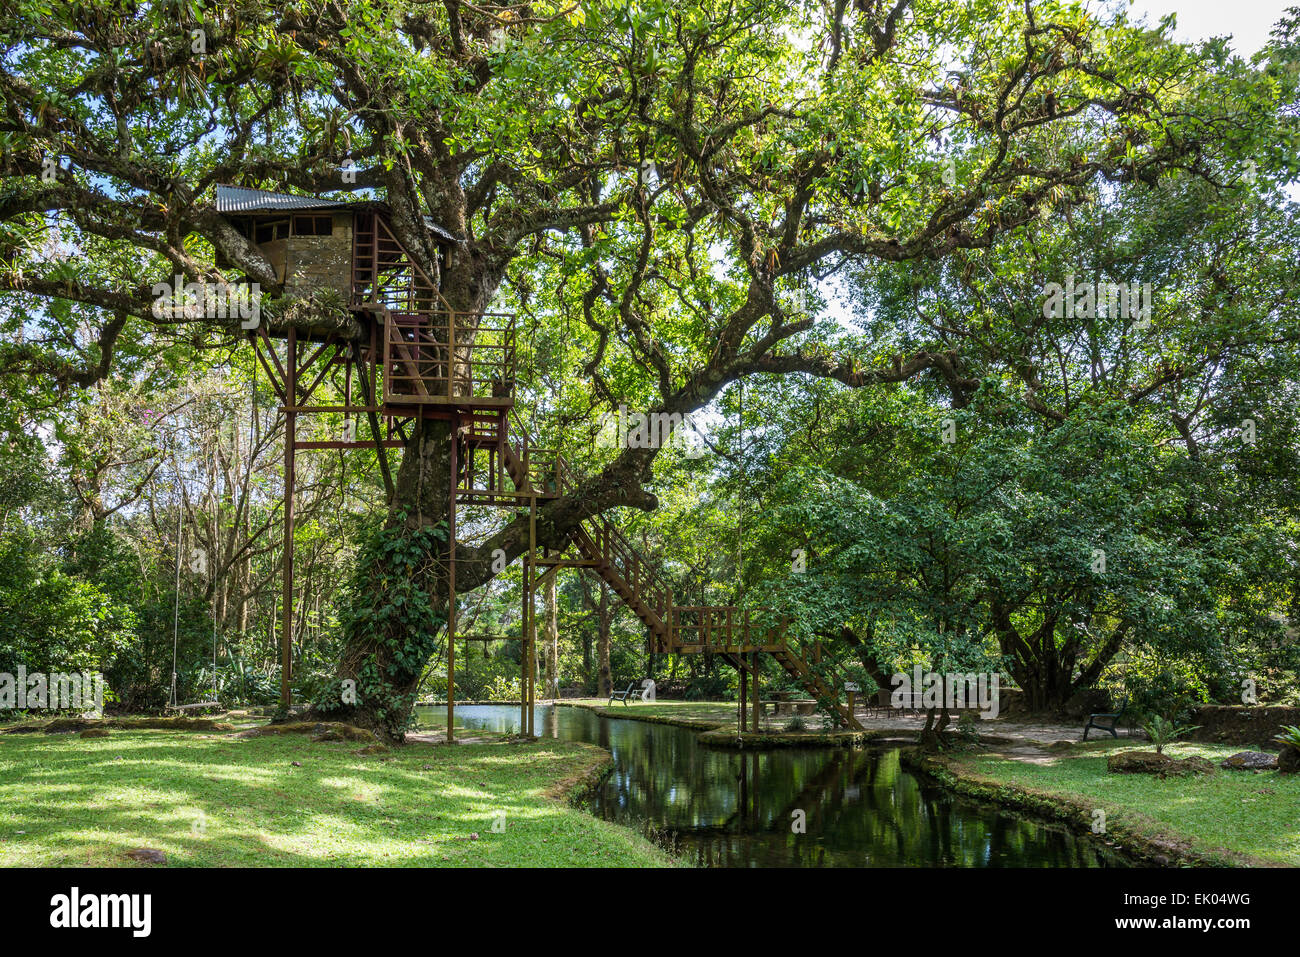 A tree-house under the canopy of a giant oak tree. Panama Central America & A tree-house under the canopy of a giant oak tree. Panama Central ...